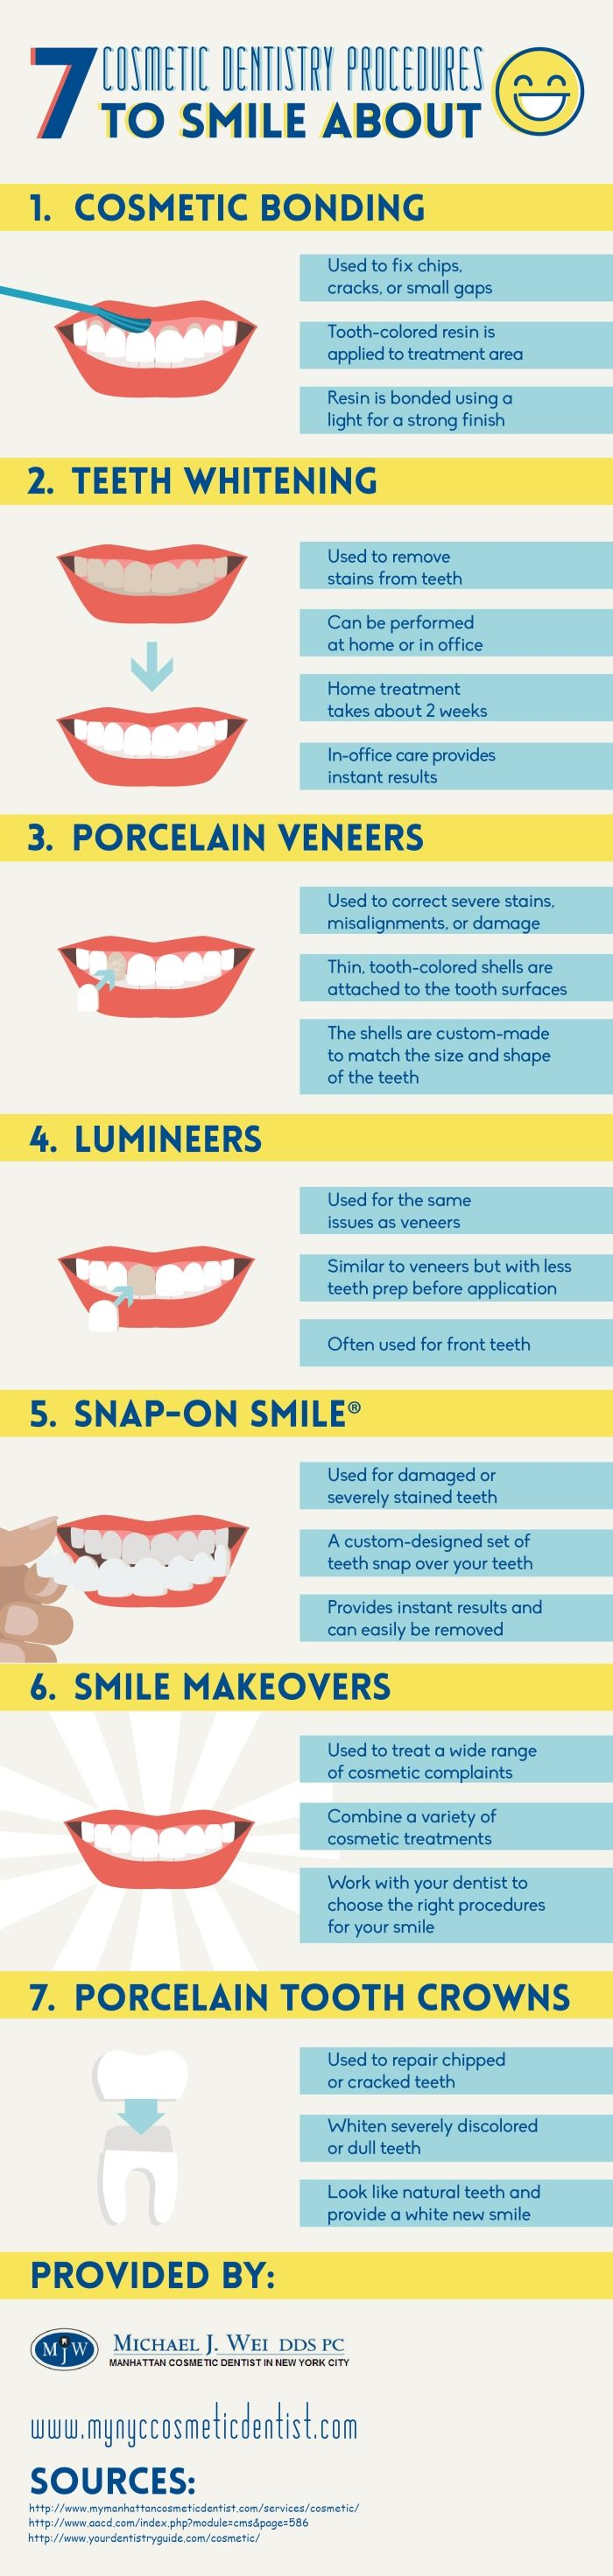 Do you avoid pictures because of your smile? A smile makeover can use a variety of treatments to give you a smile you'll love showing off! Click over to this Manhattan cosmetic dentistry infographic to learn more about smile makeovers.